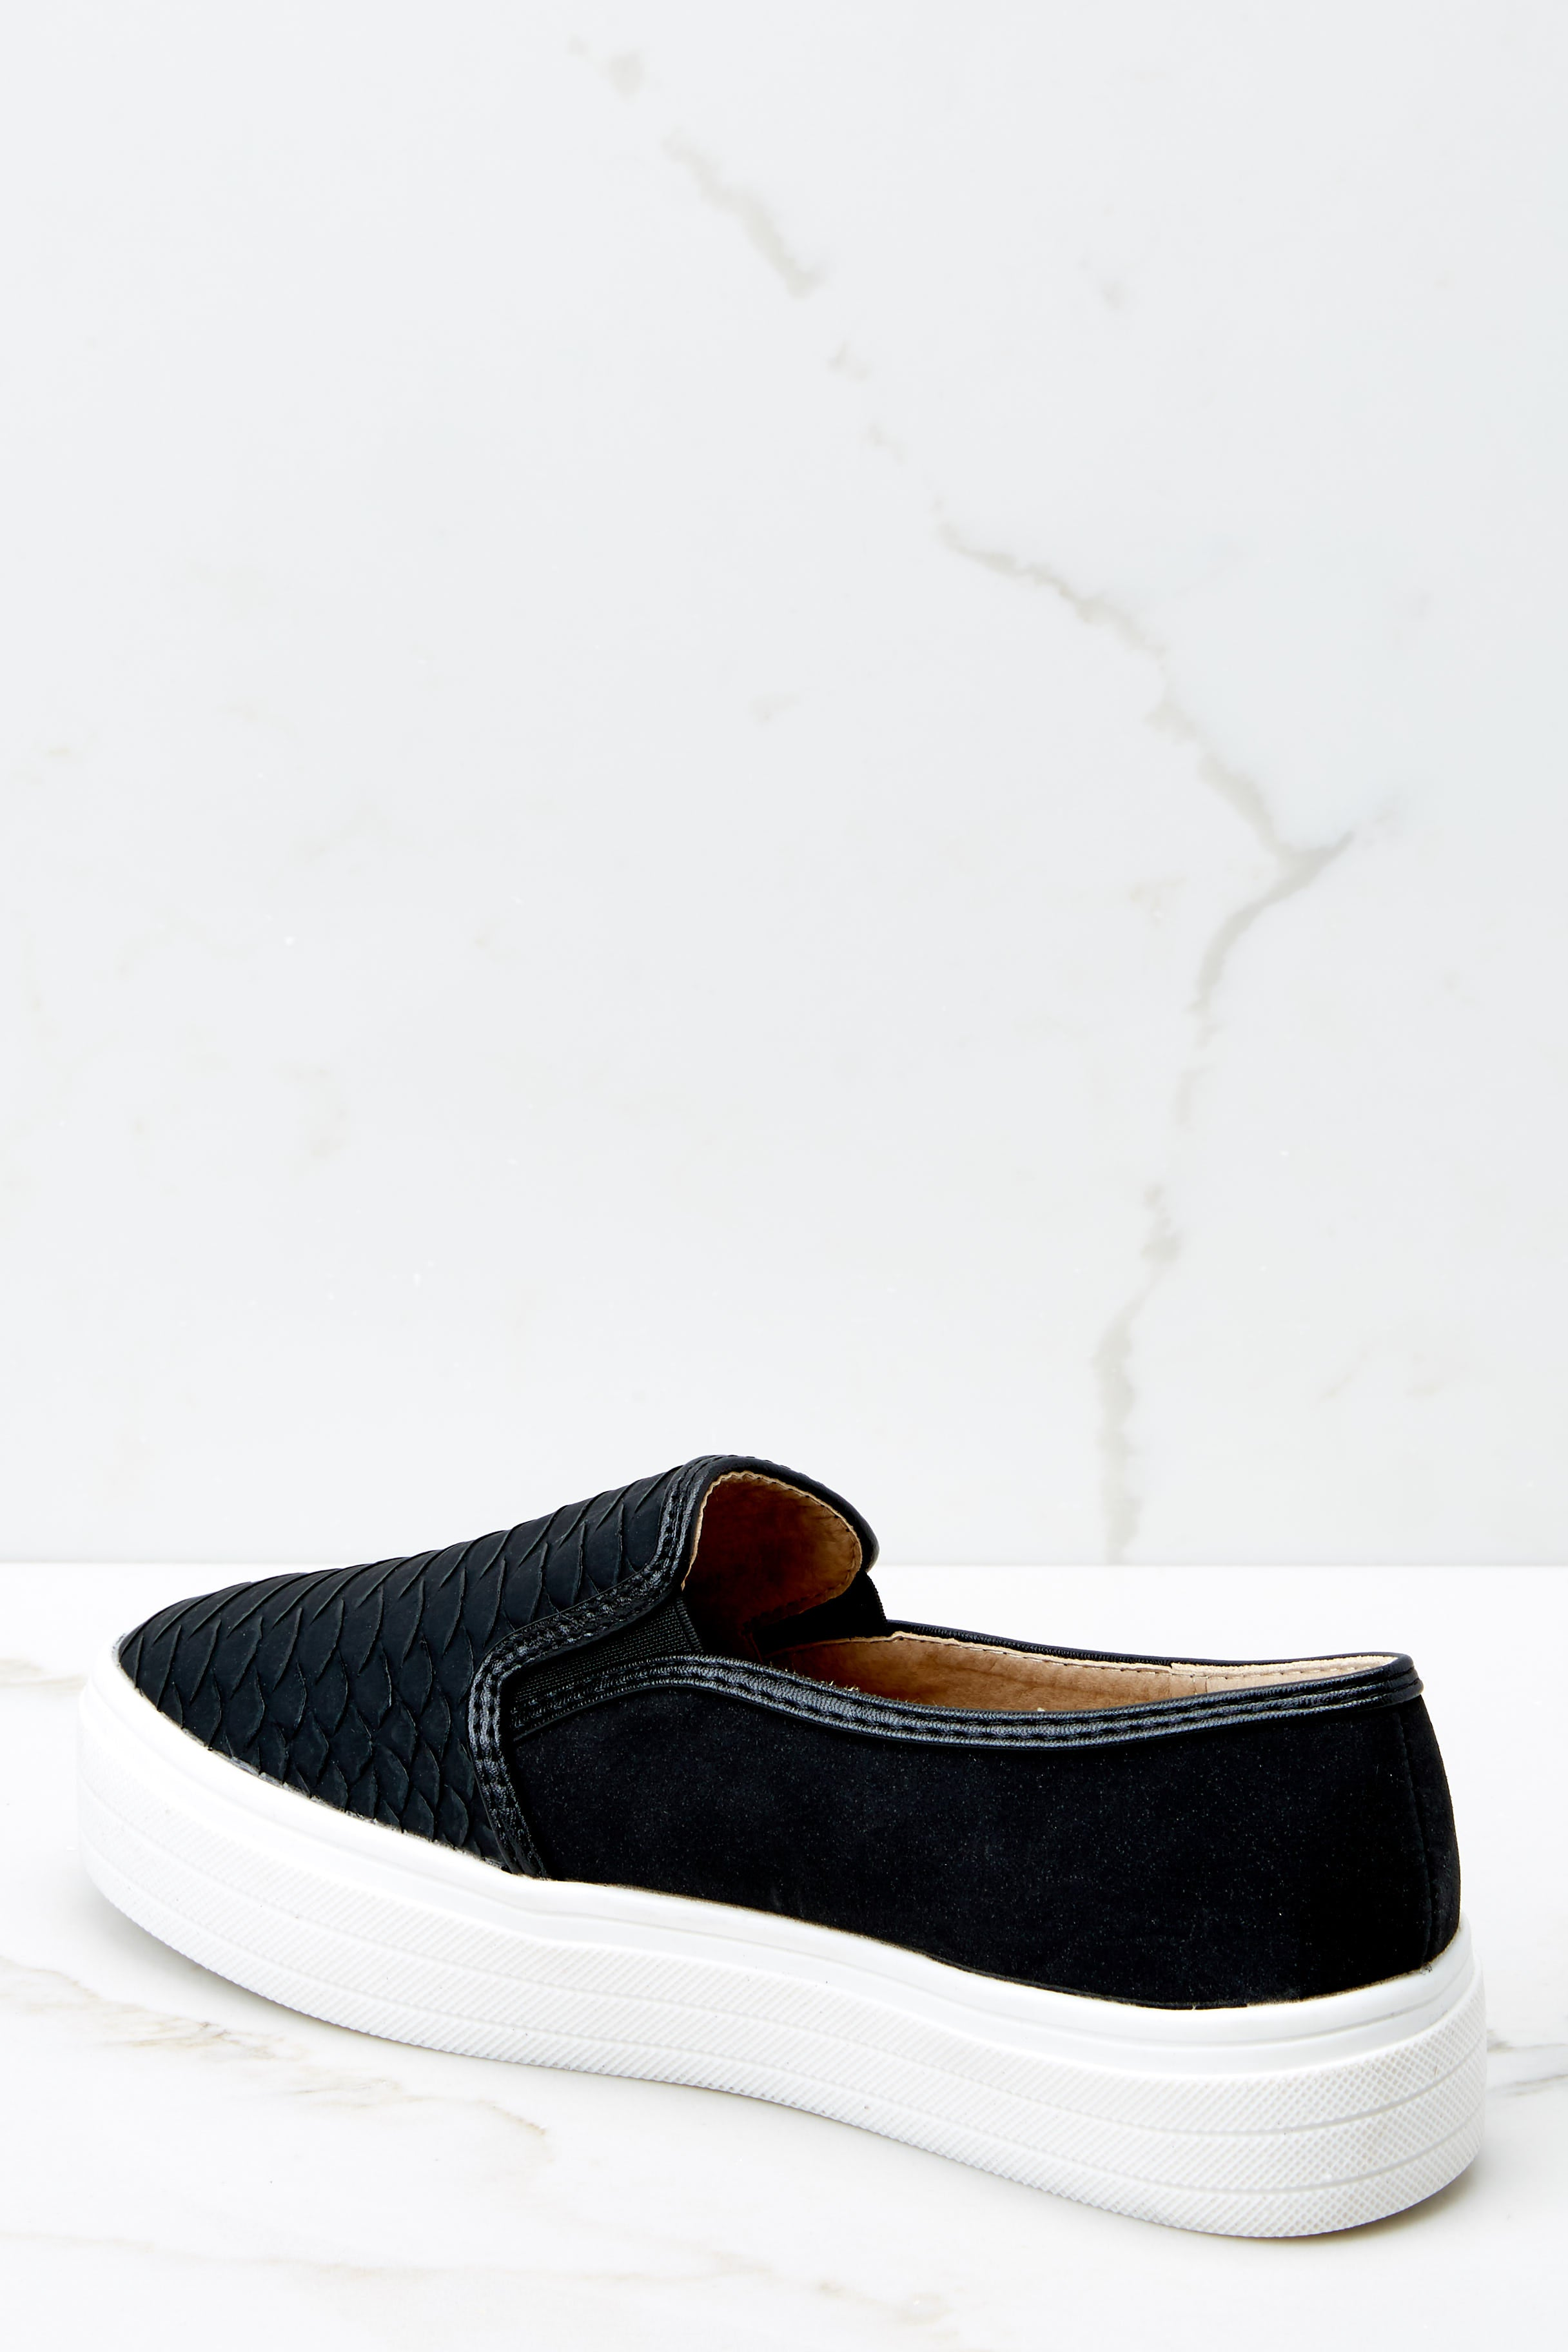 3 Into High Gear Black Slip On Sneakers at reddressboutique.com